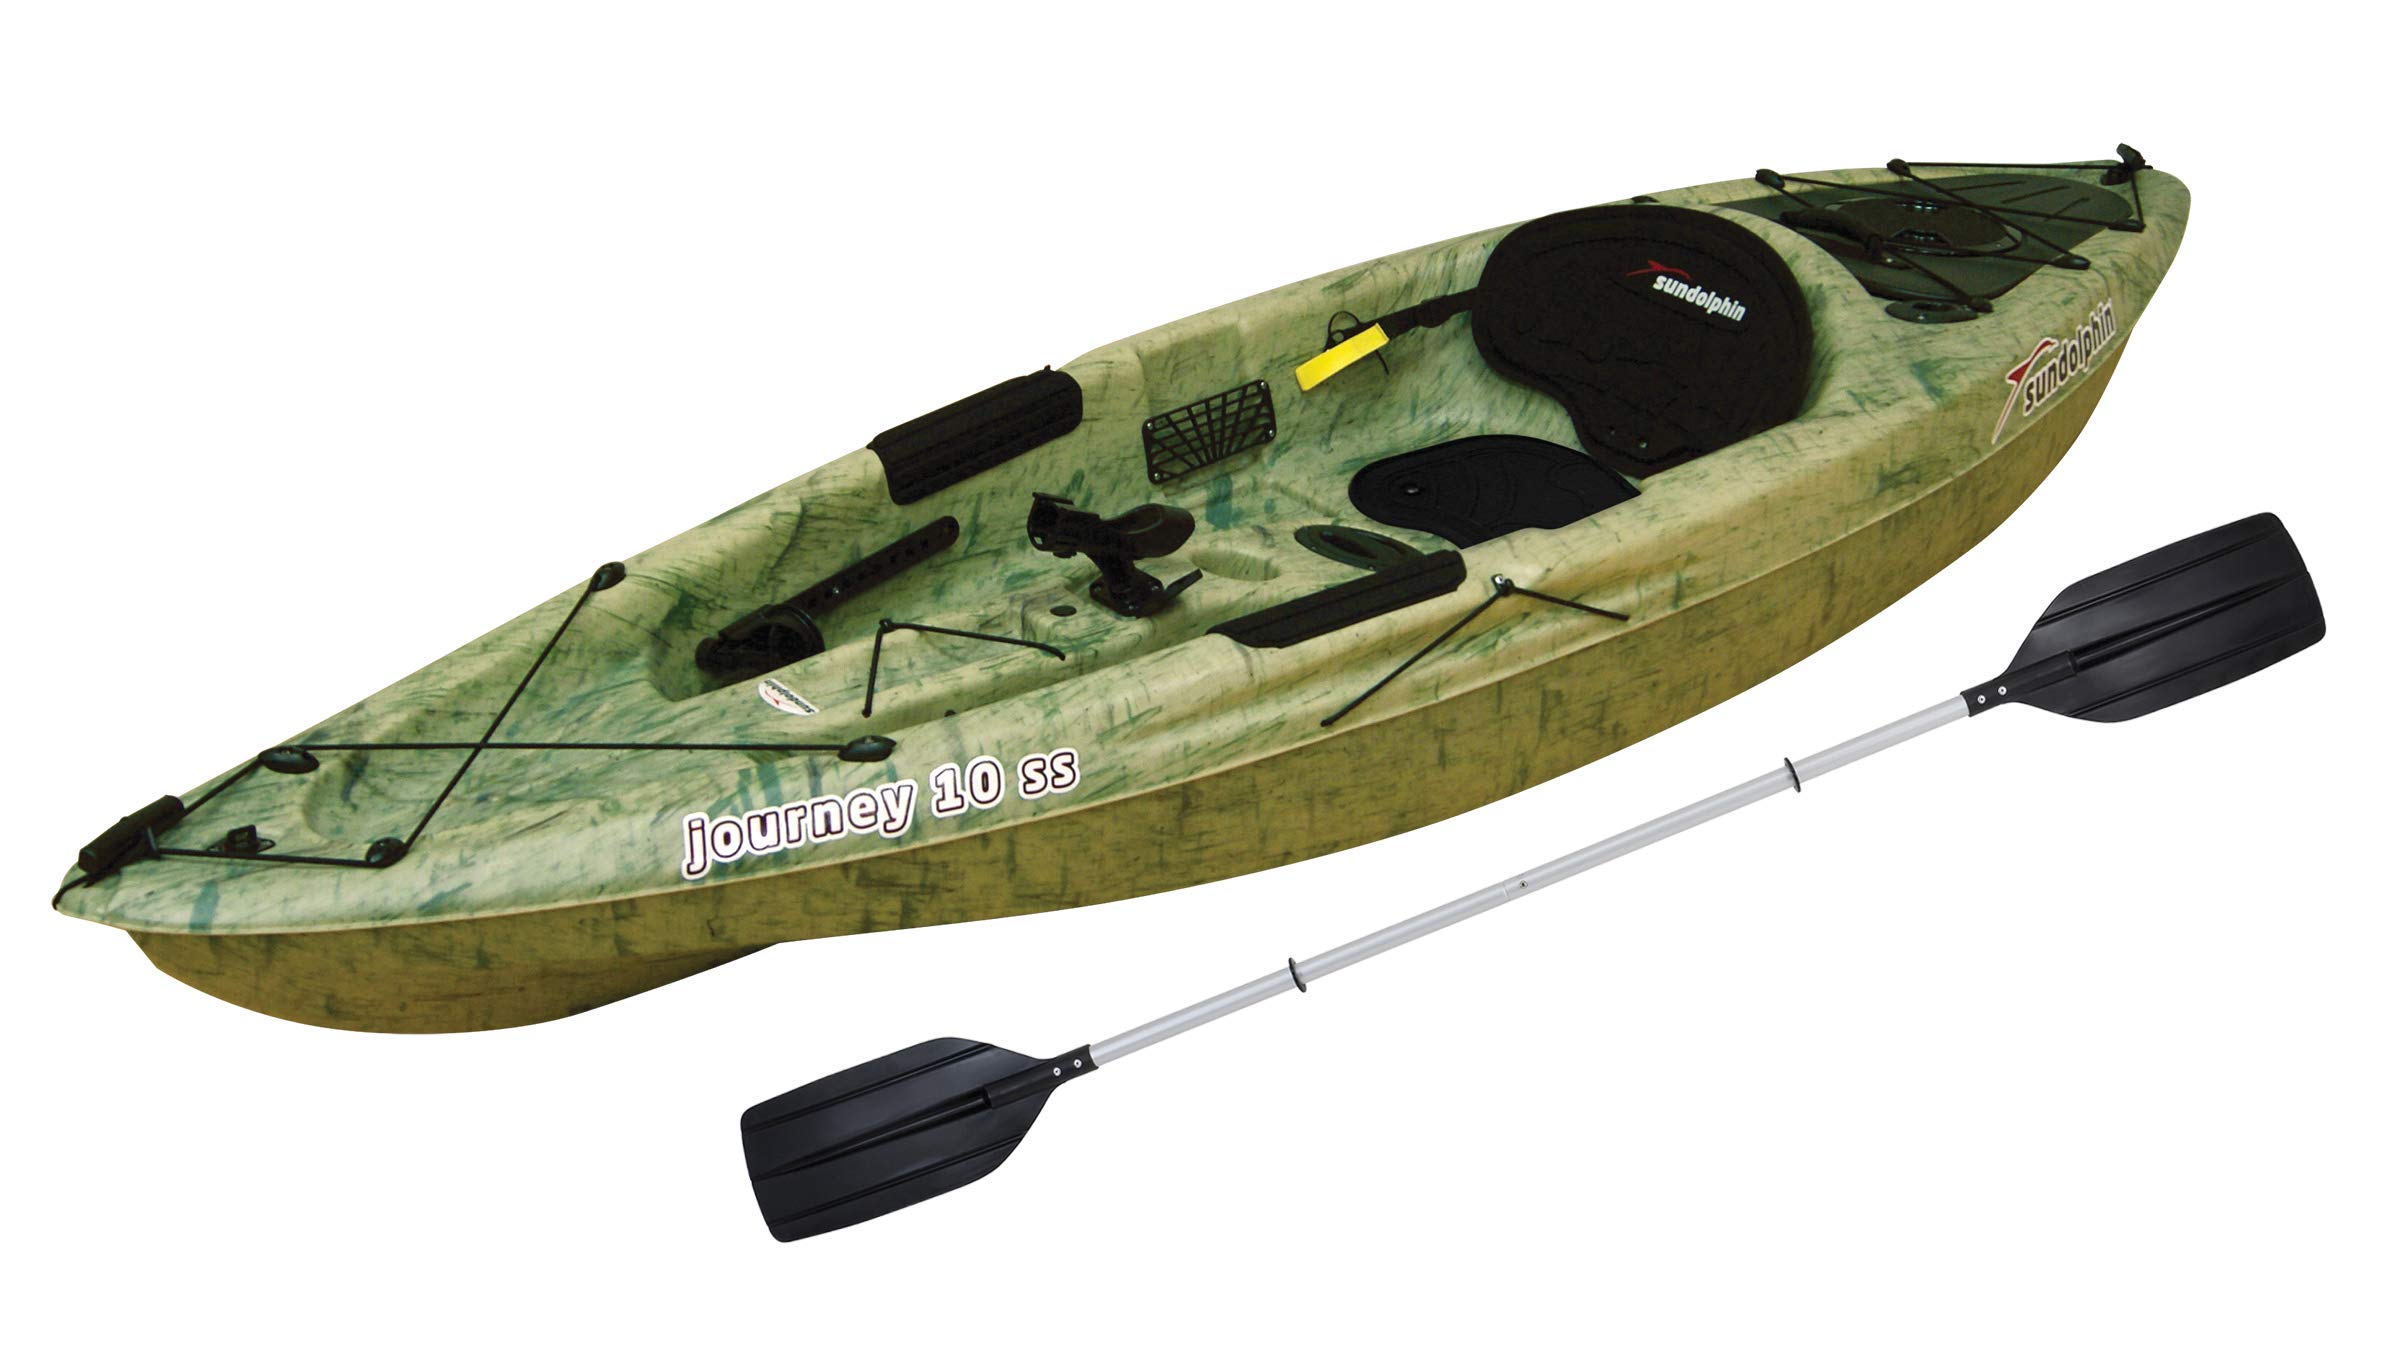 SUN Dolphin Journey 10 SS Sit-On Fishing Holiday Vacation River Lake Angler Kayak, Paddle Included! (Grass)